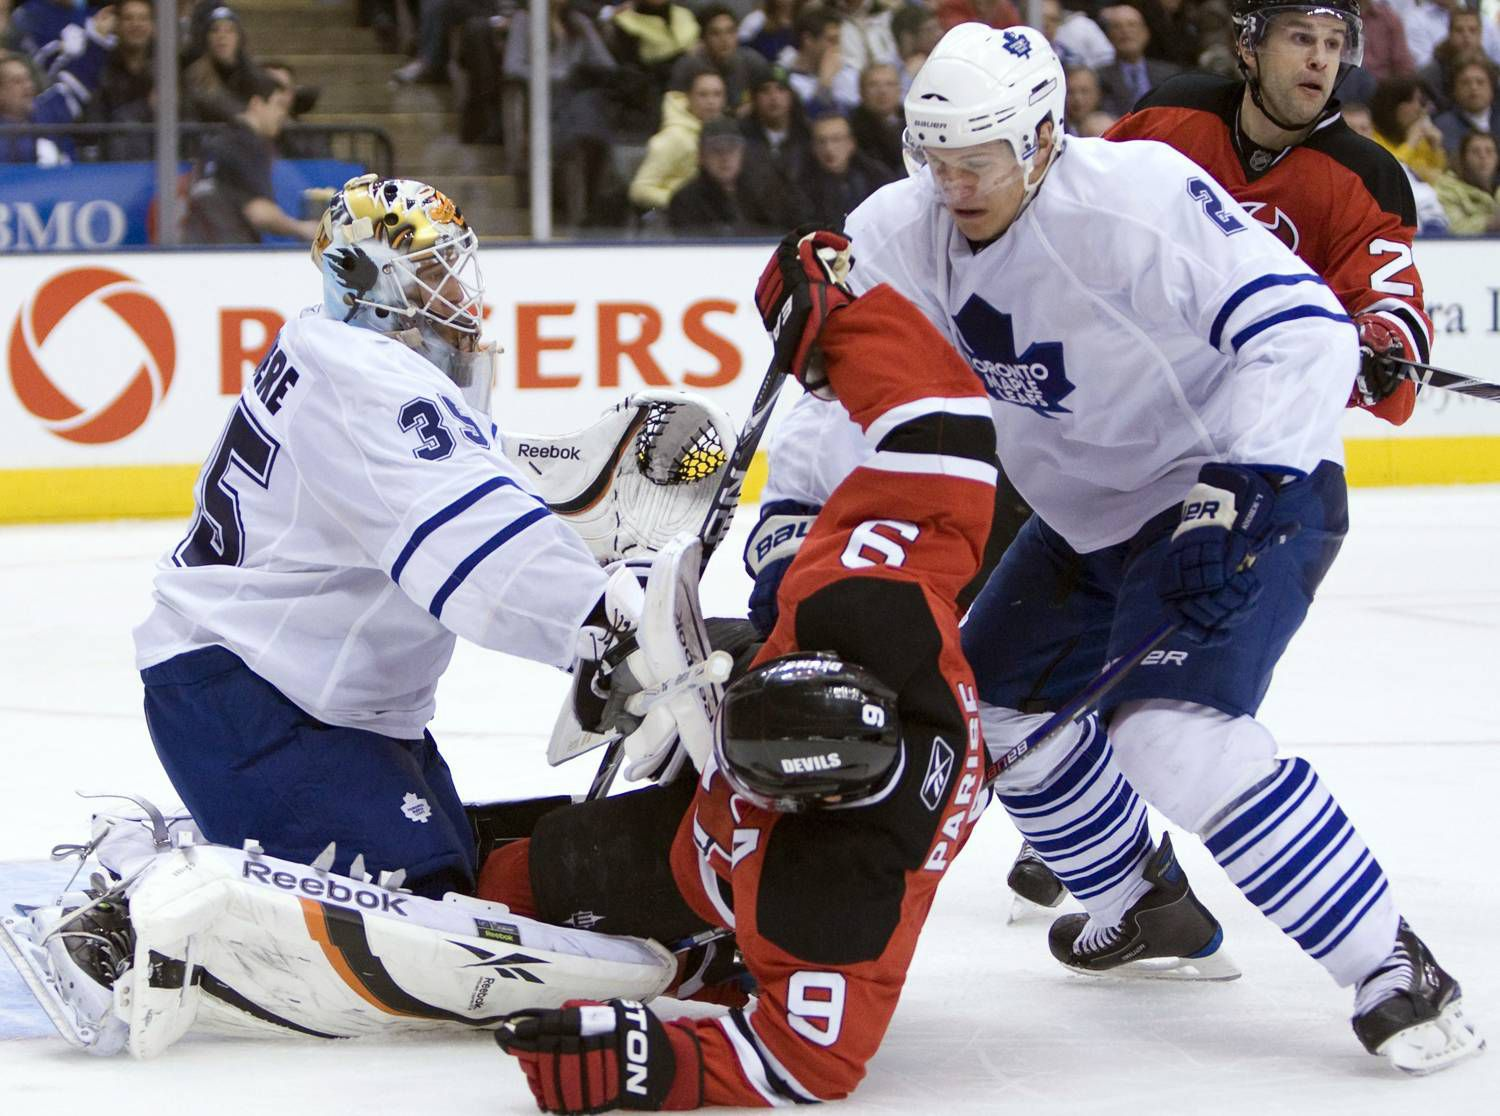 fb43243e152 Leafs dig deep, dump Devils - The Globe and Mail